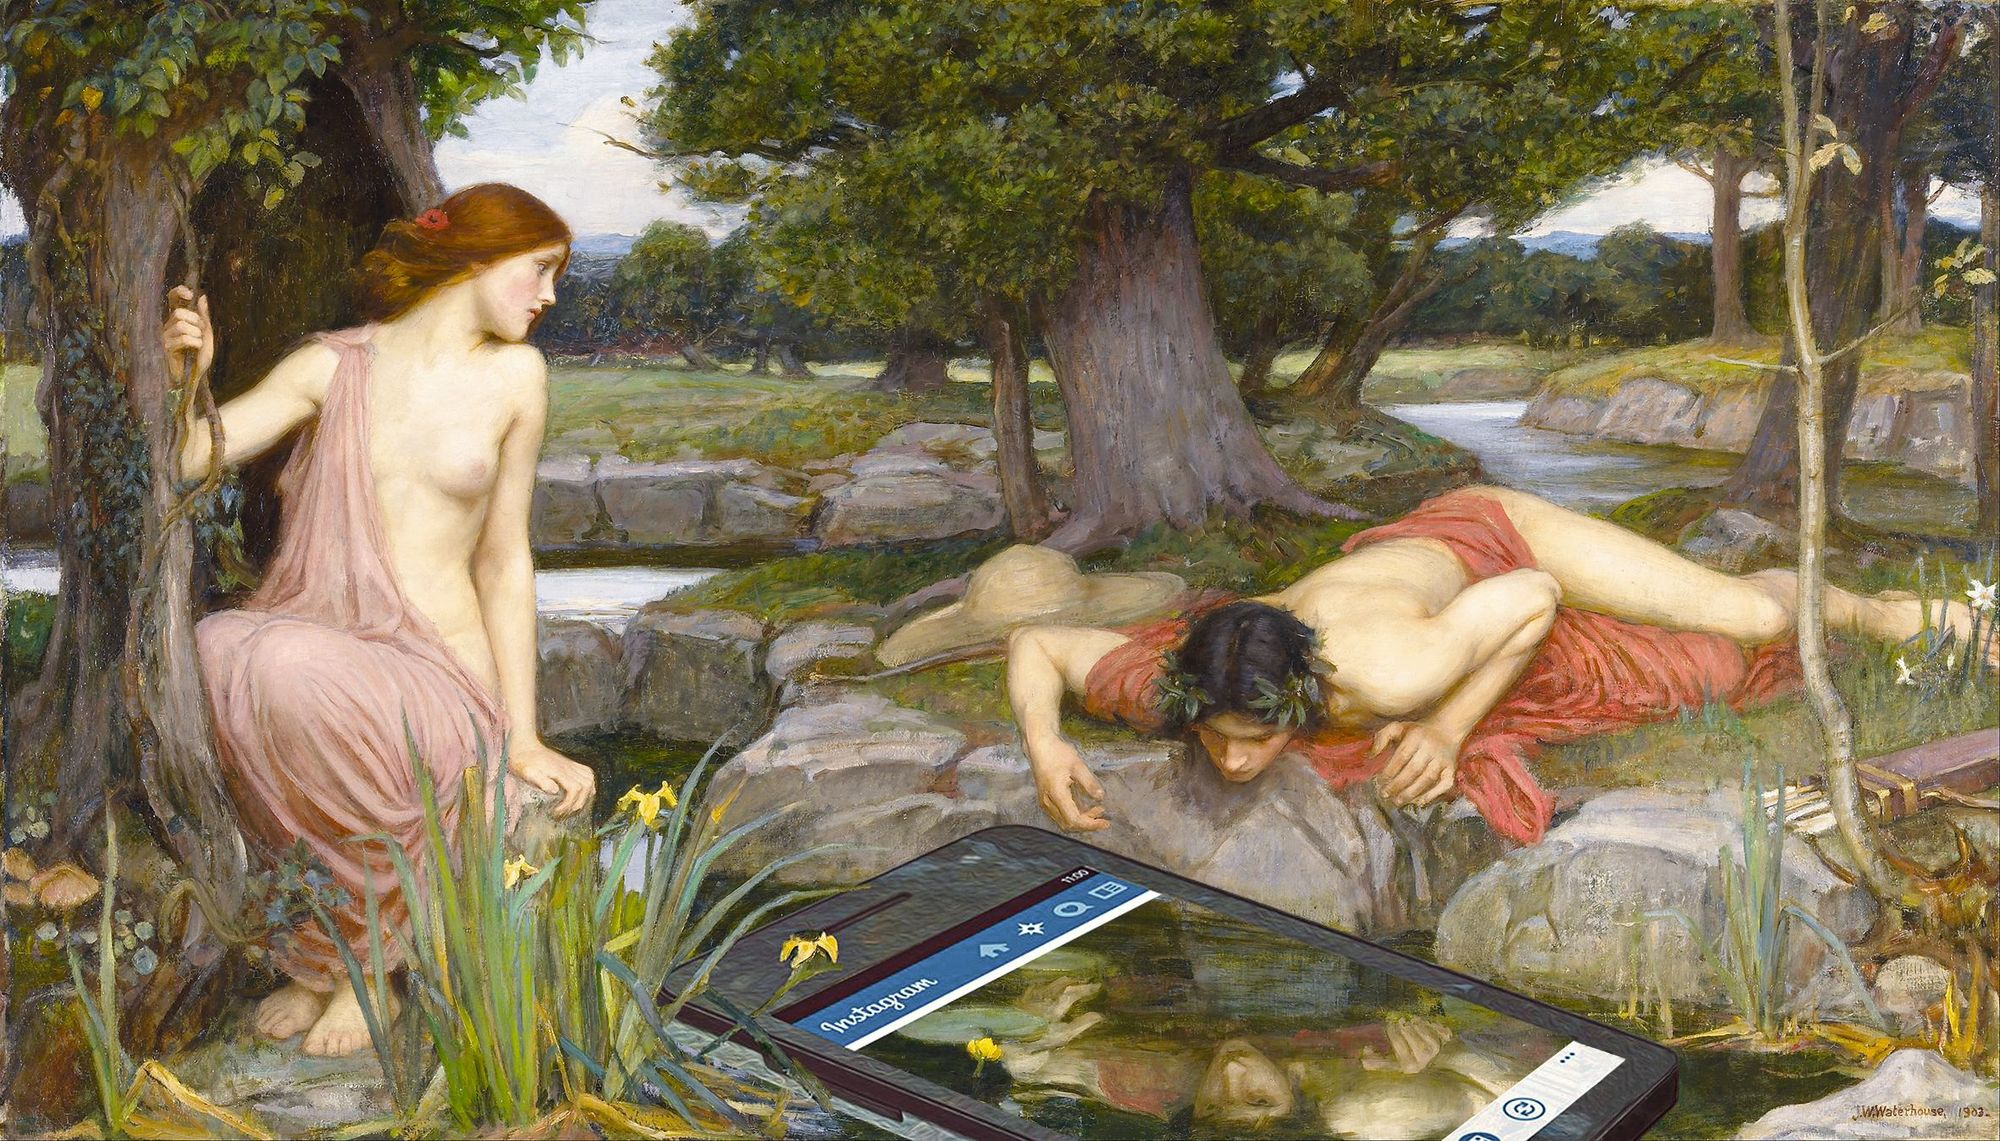 Echo and Narcissus, by John William Waterhouse, 1903, adapted by Dan Cretu, 2015.